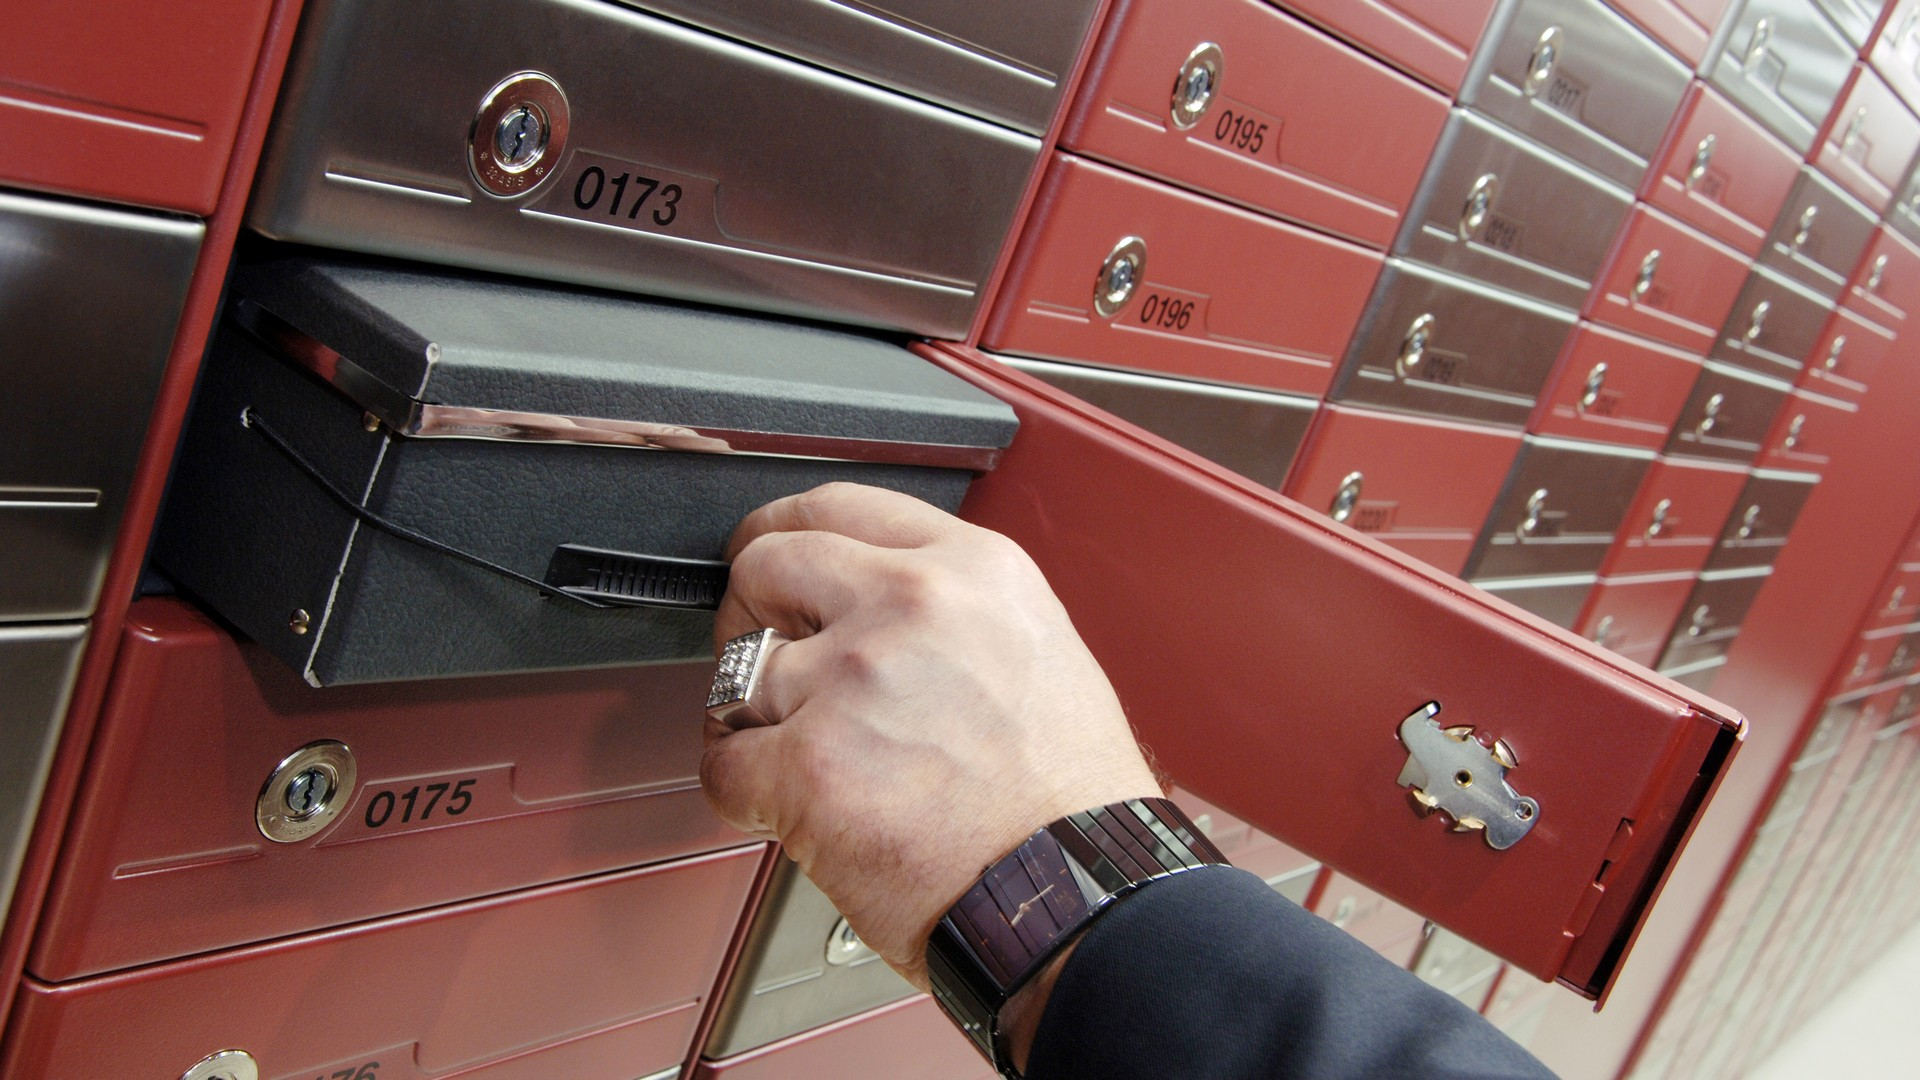 Protect your valuables by using the instructions on deposit safe box.